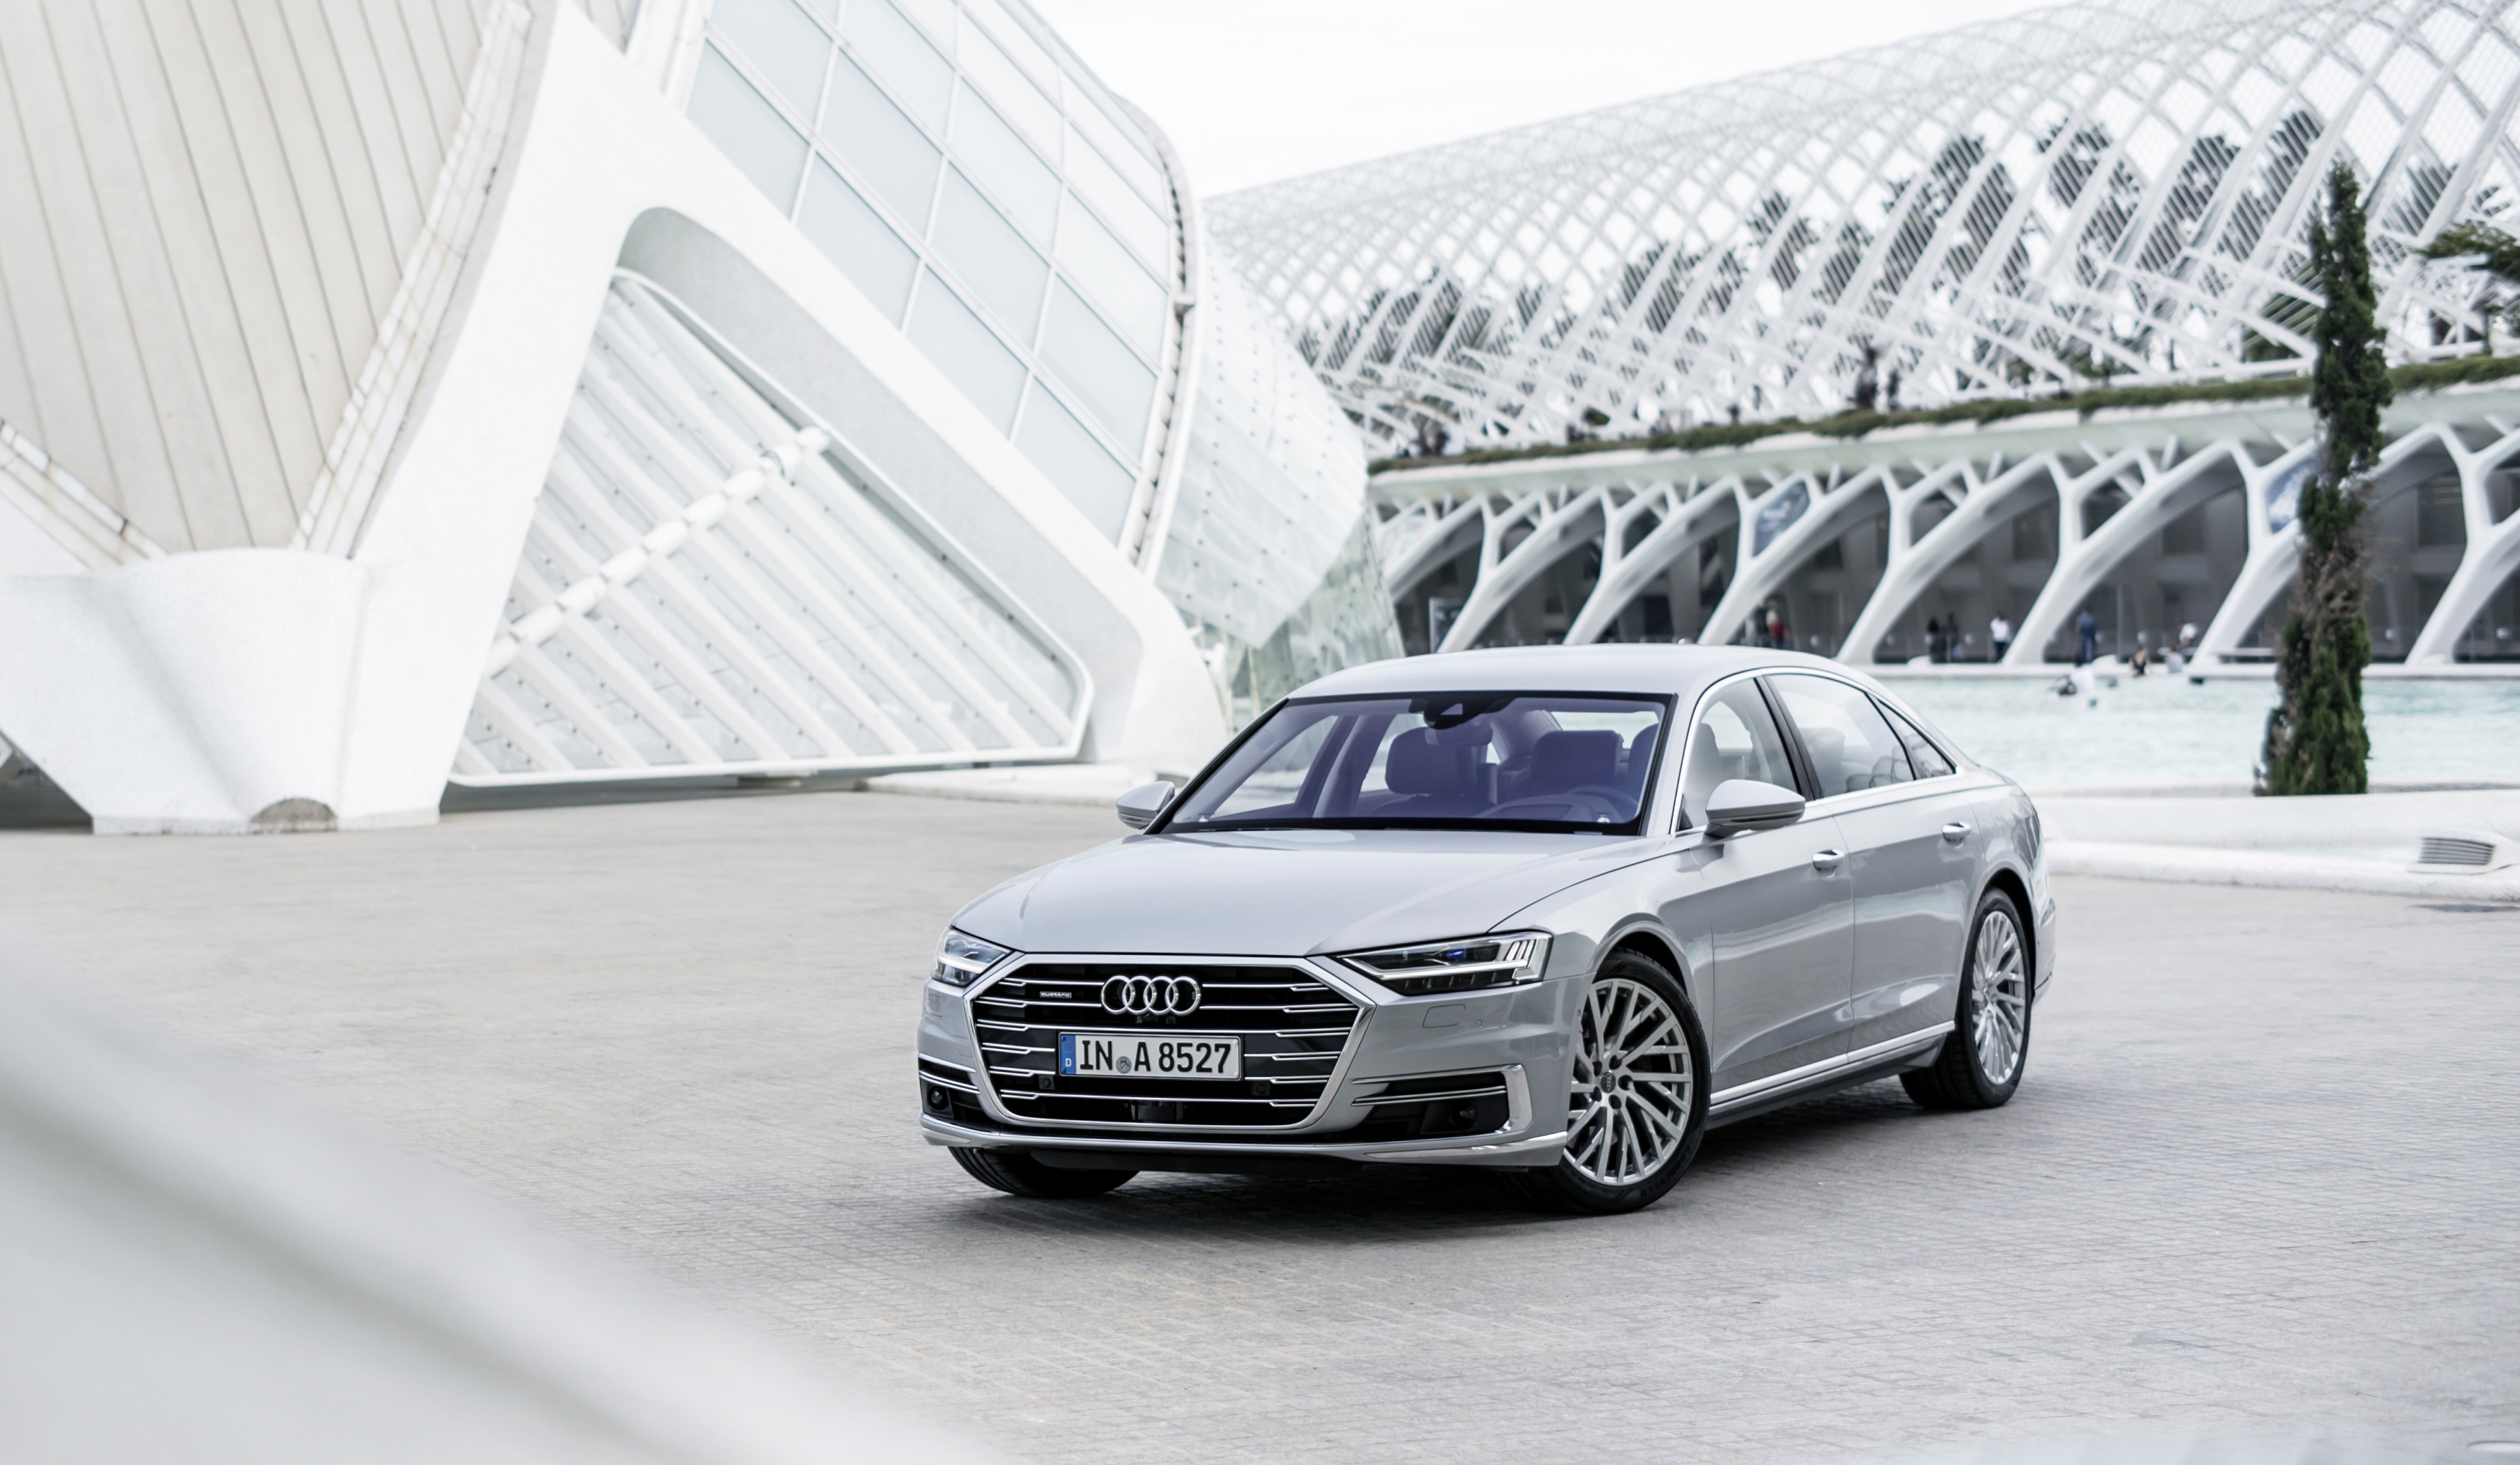 El A8 de Audi conquista el premio World Luxury Car 2018